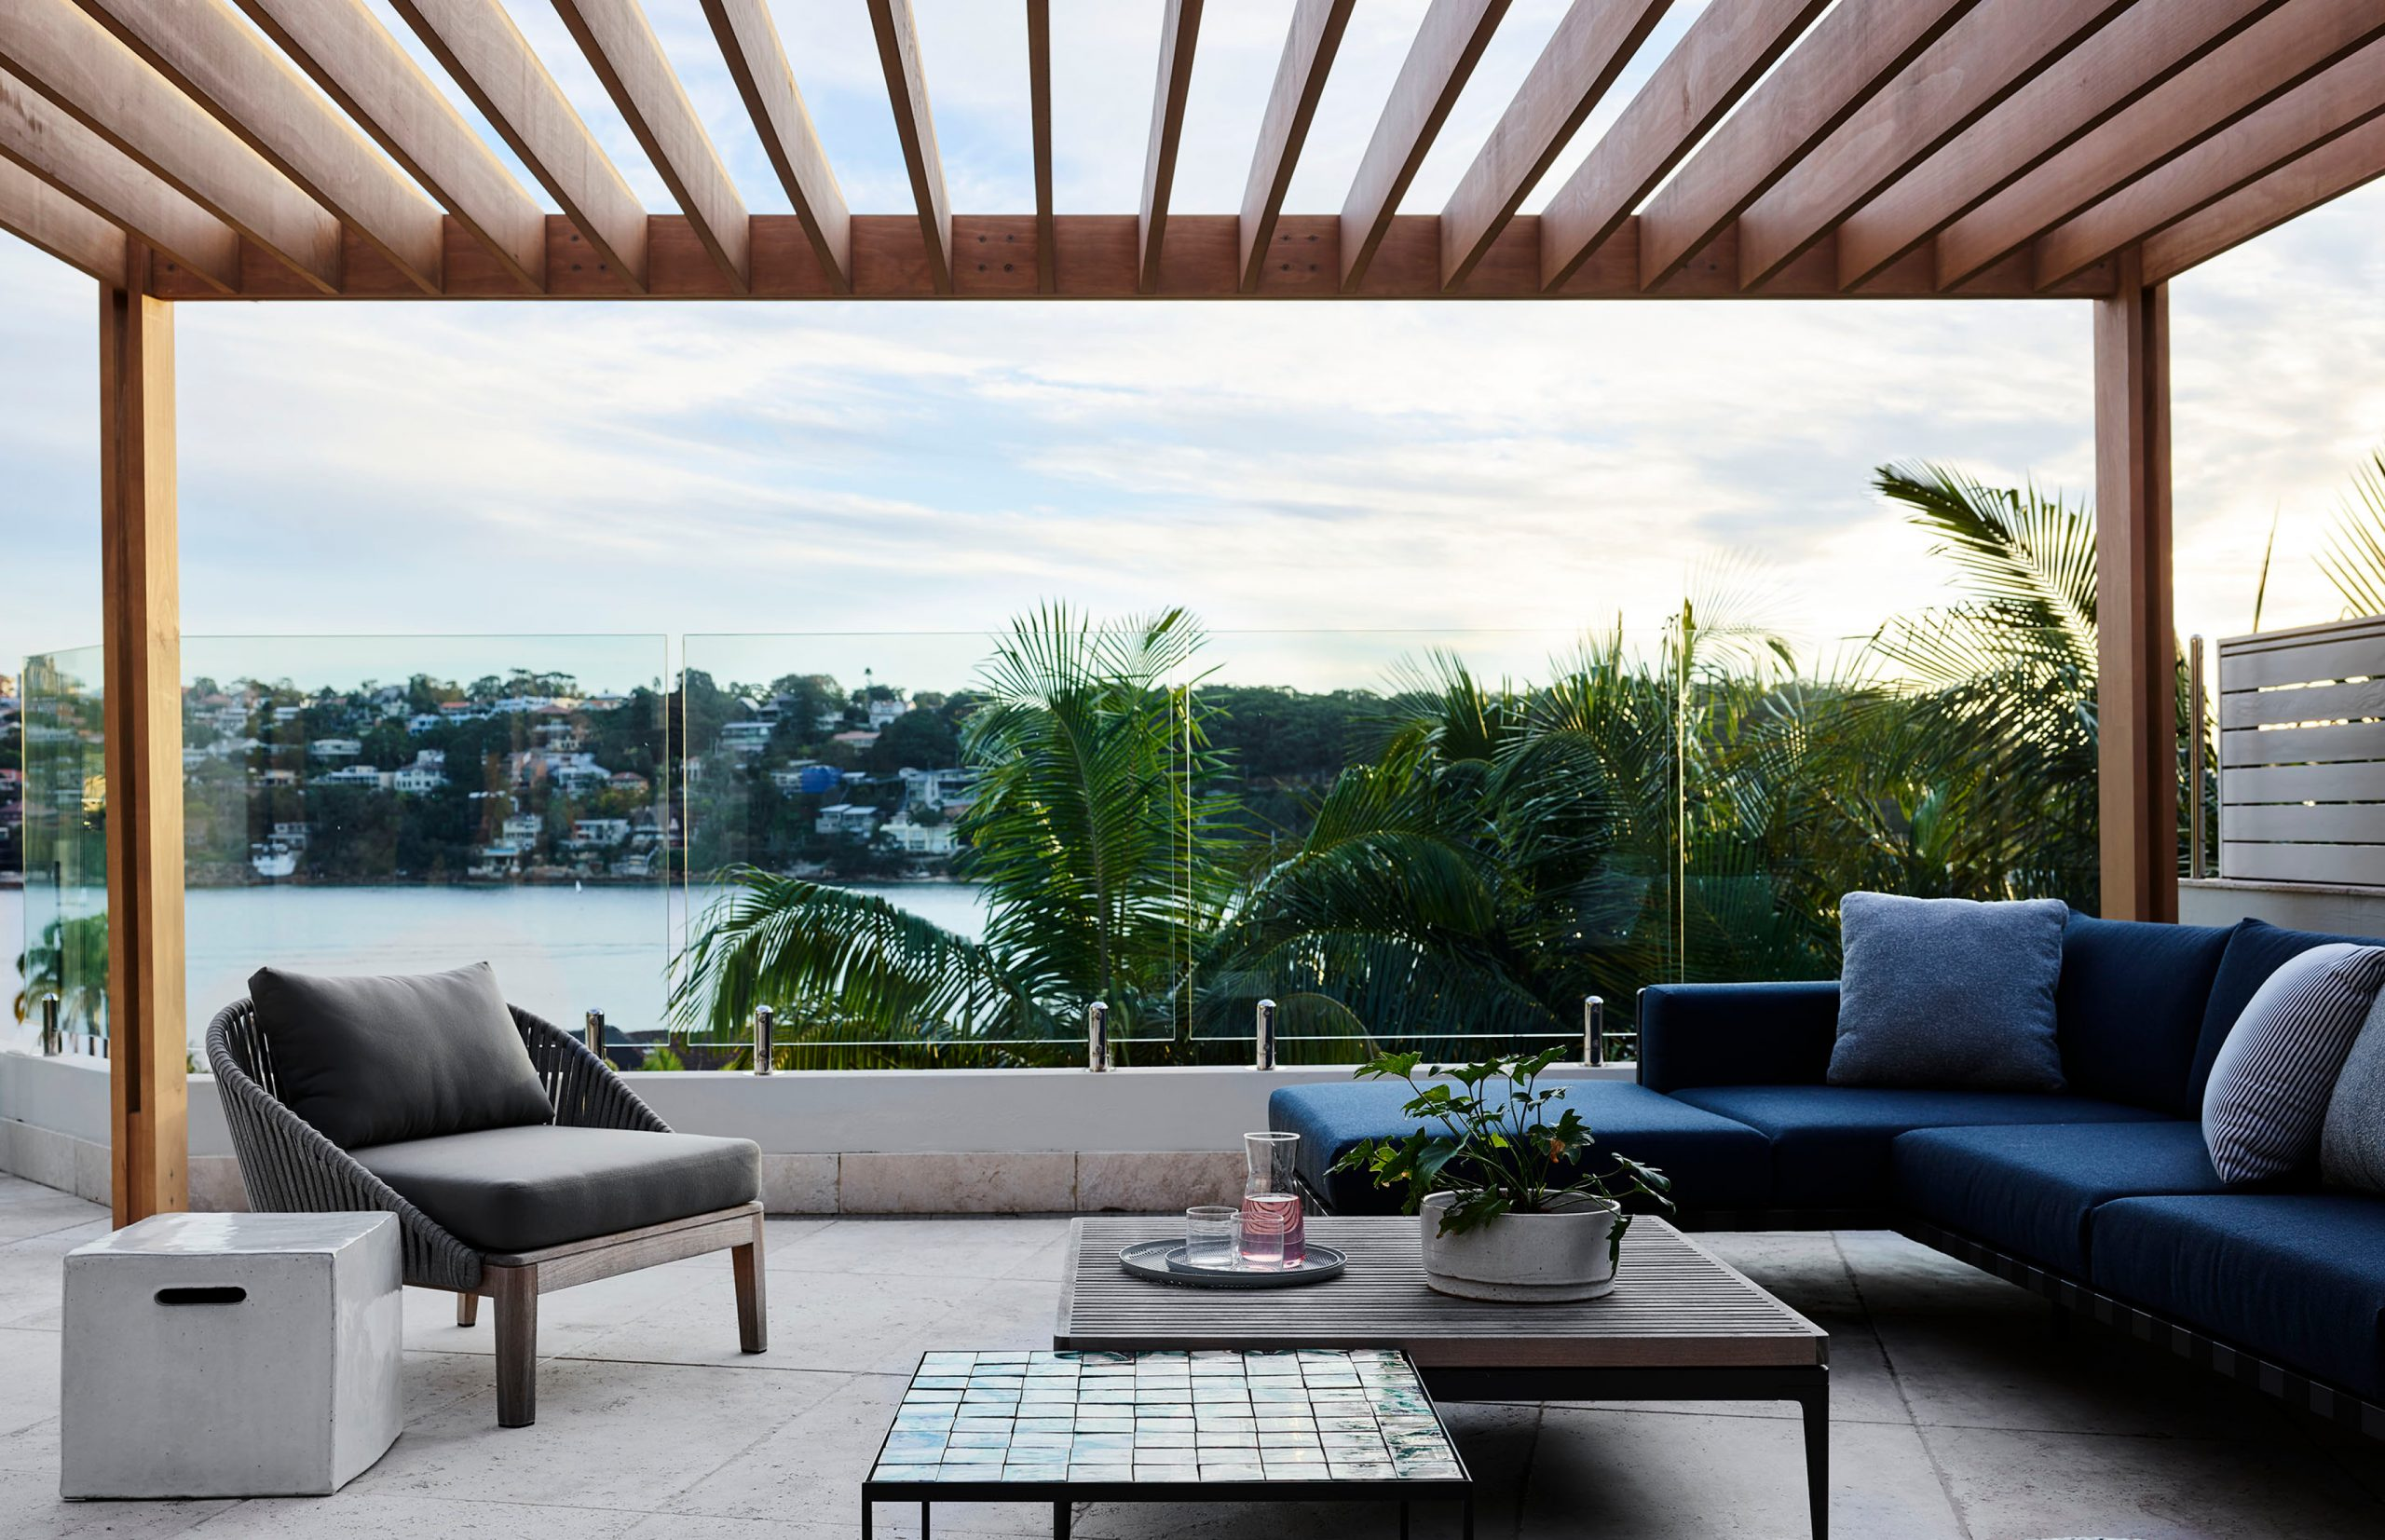 Outdoor lounge & water view